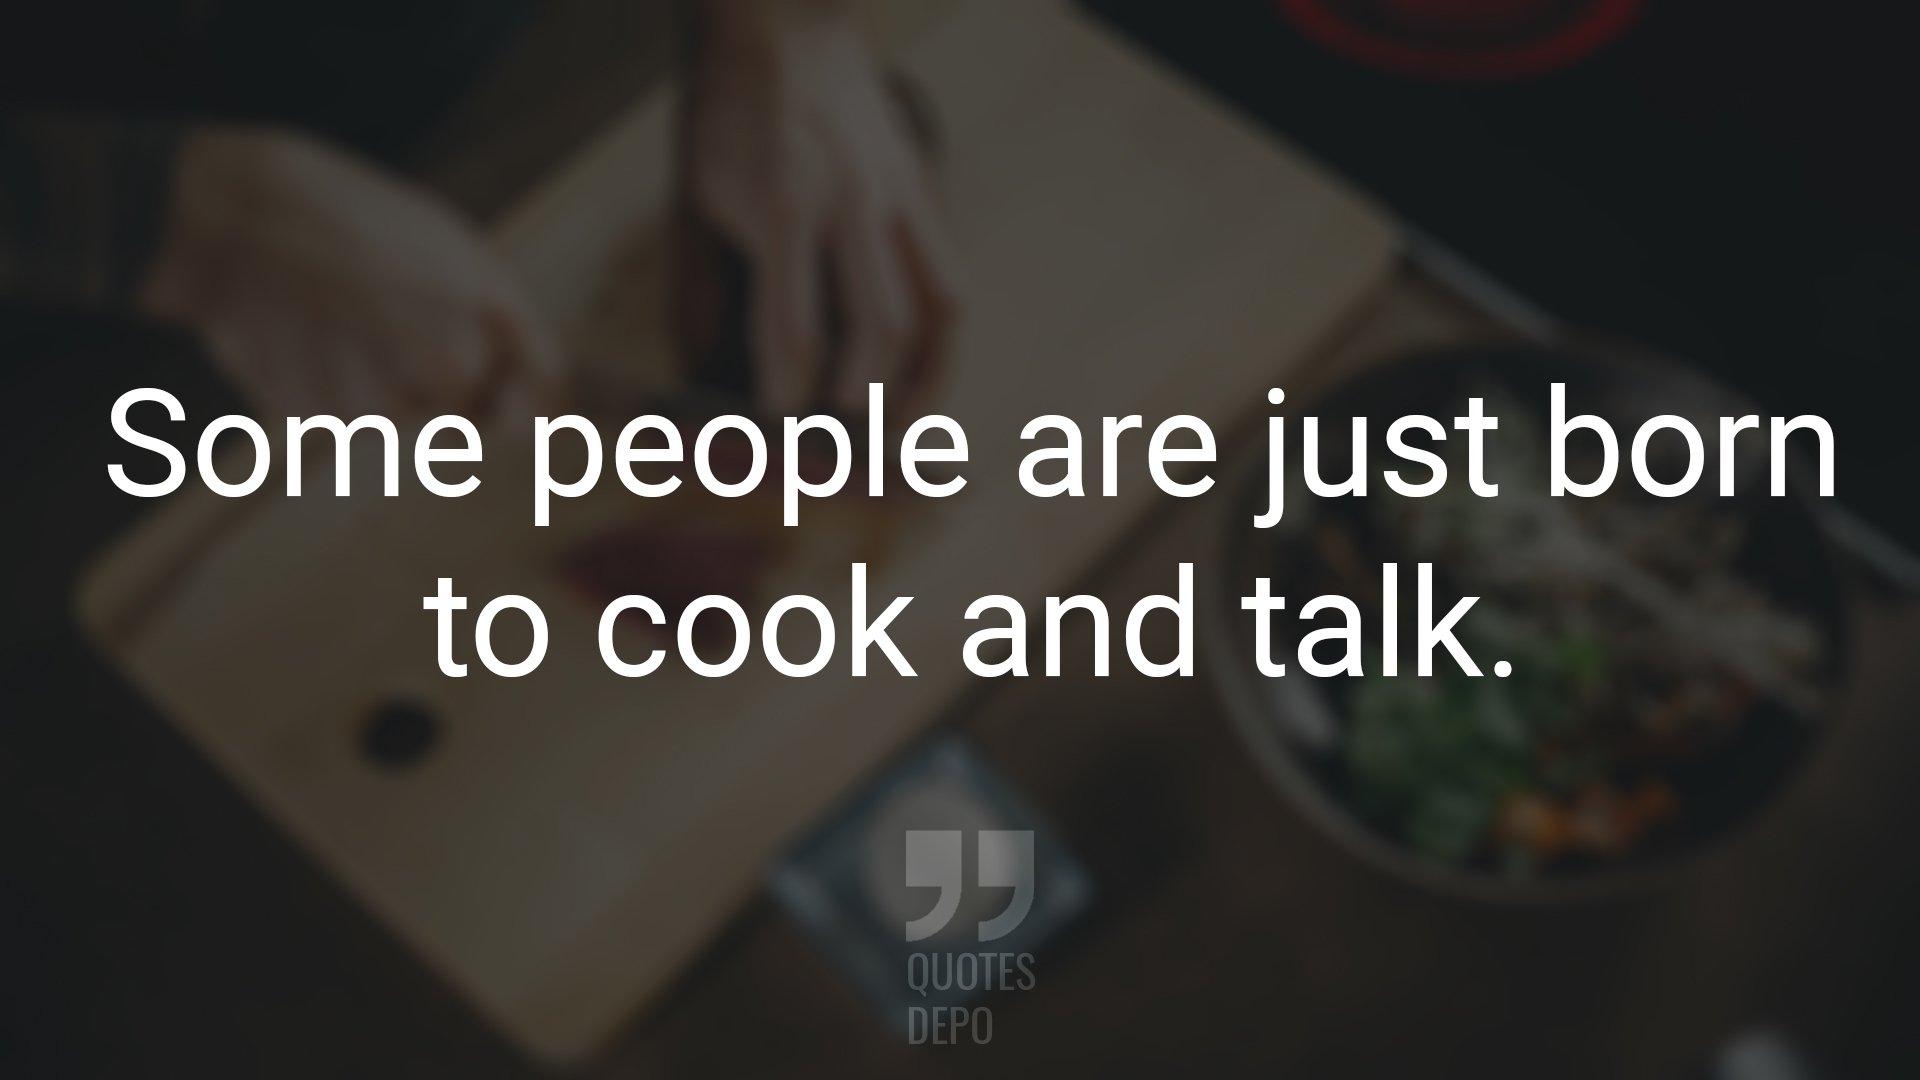 Some People are Just Born to Cook